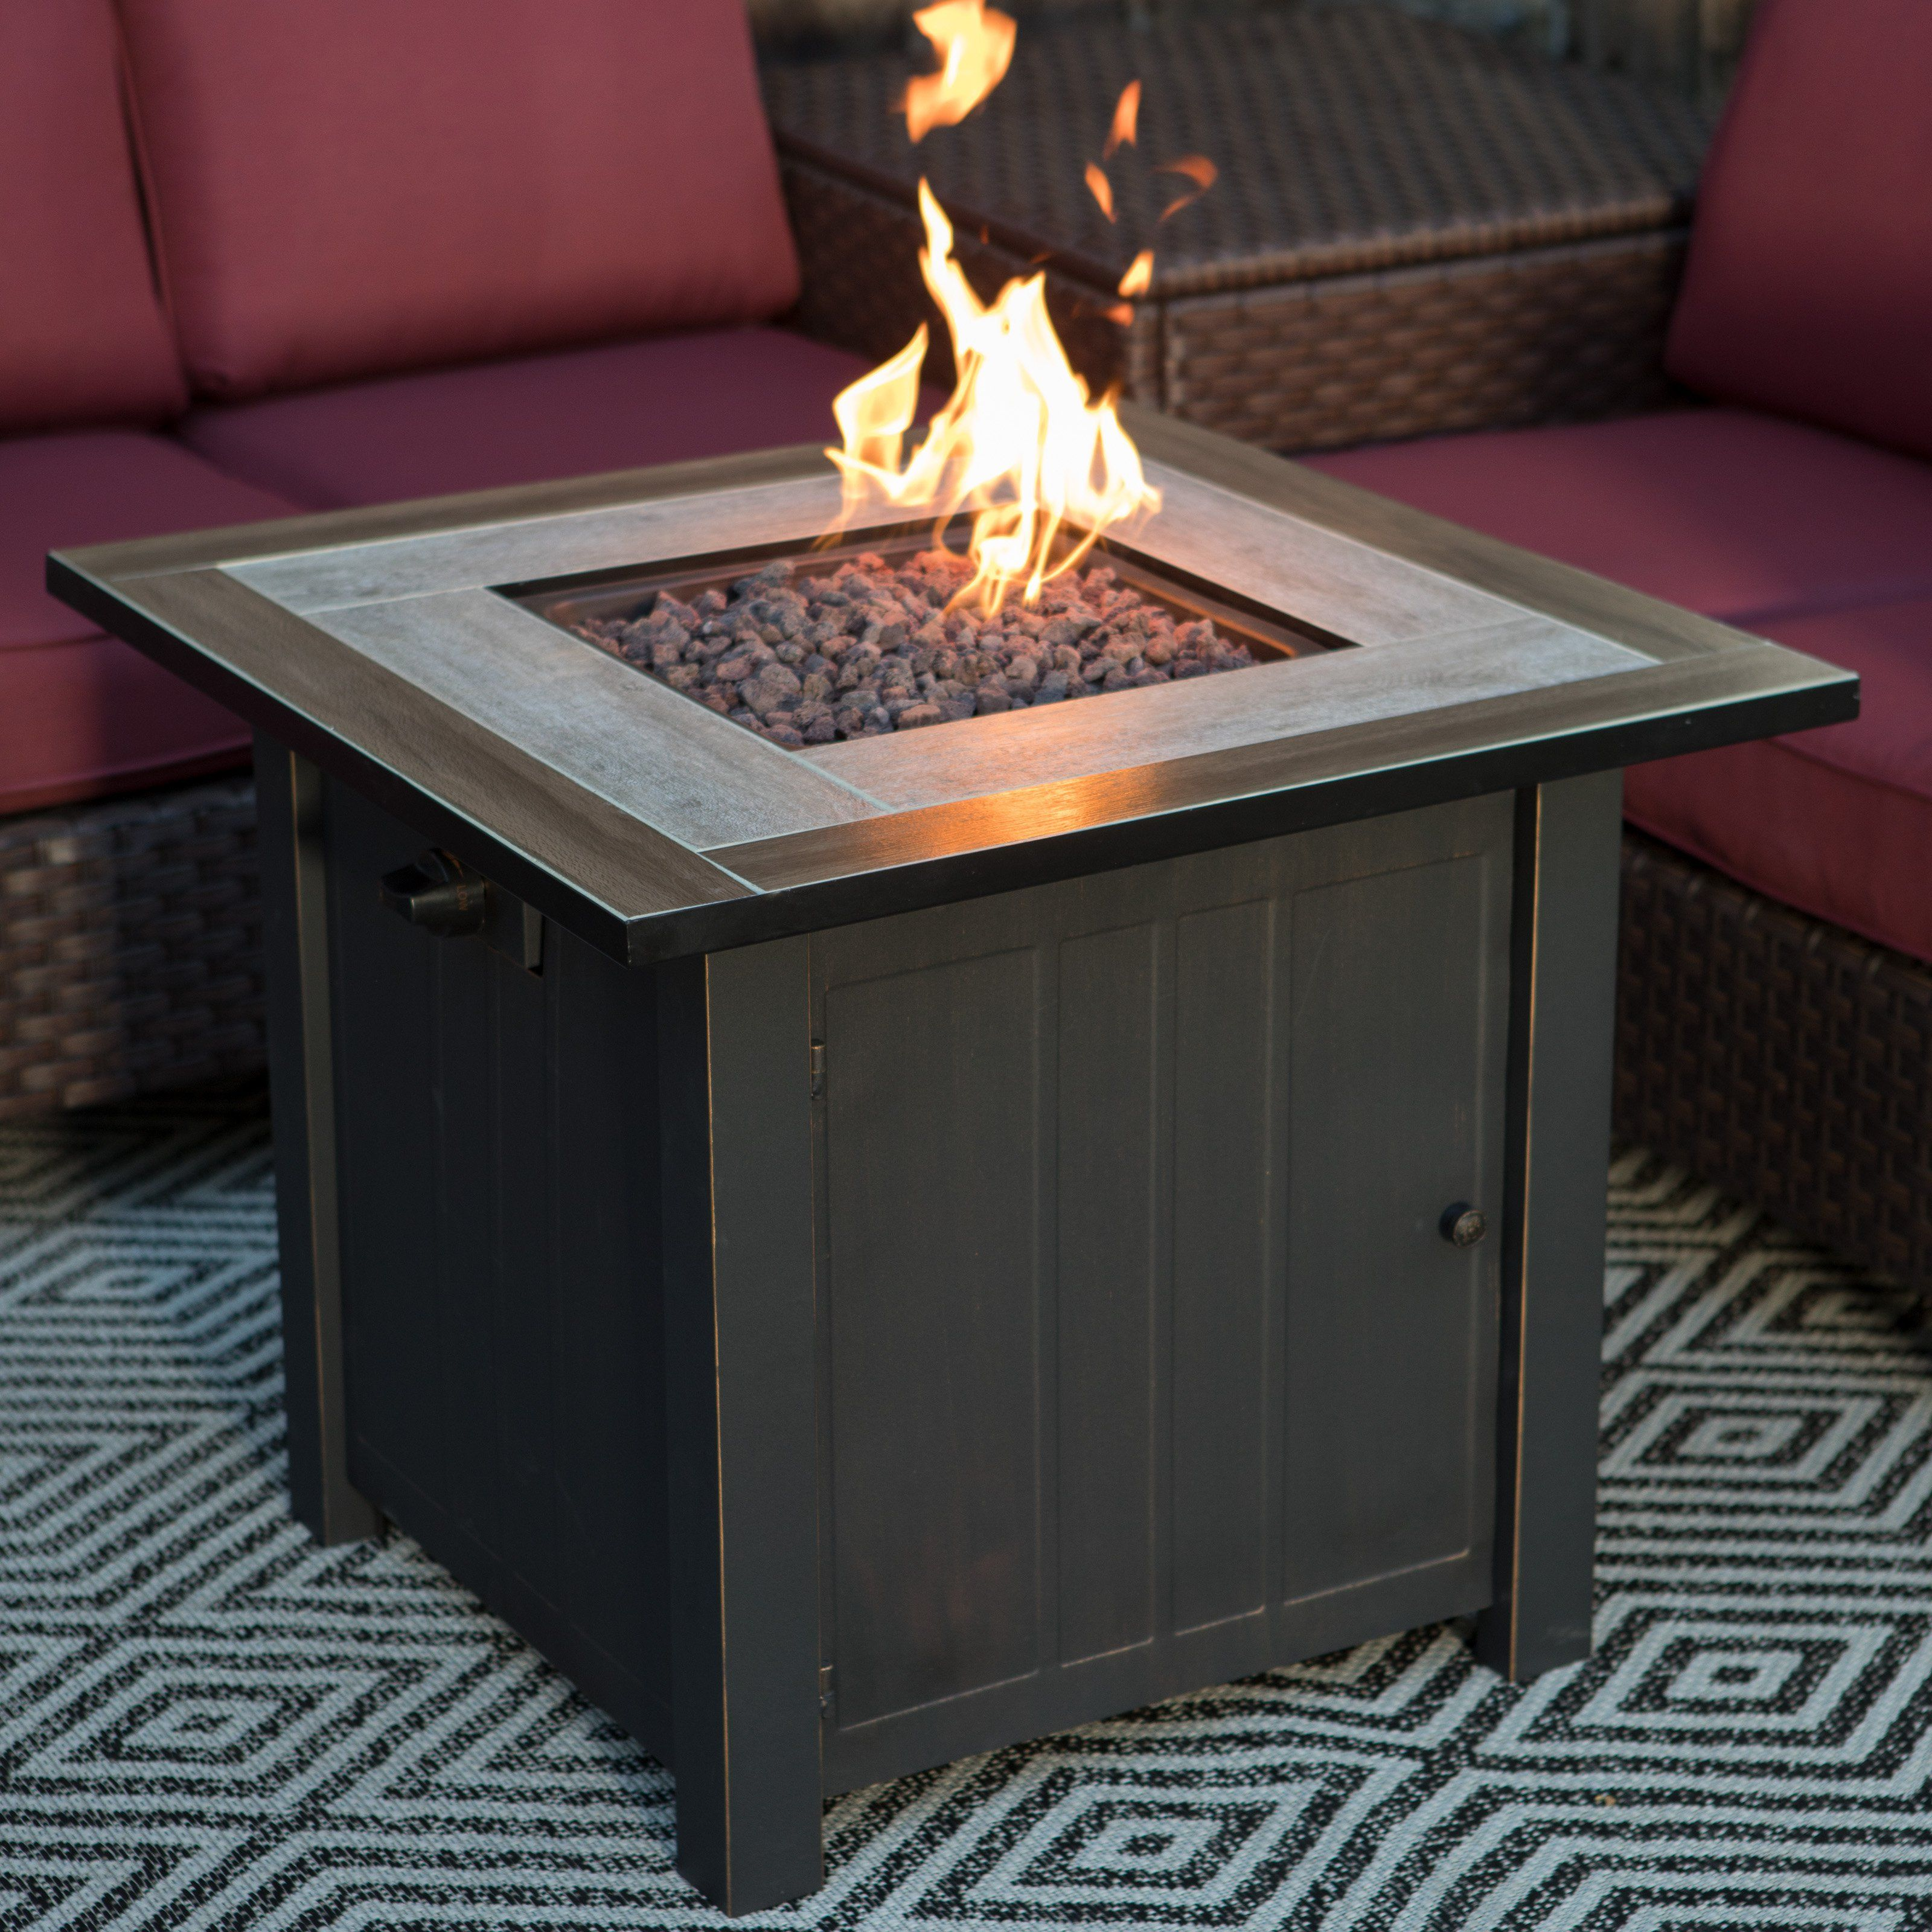 Red Ember Middleton Gas Fire Pit Table From Hayneedle Com Fire Pit Table Gas Fire Pit Table Fire Pit Backyard